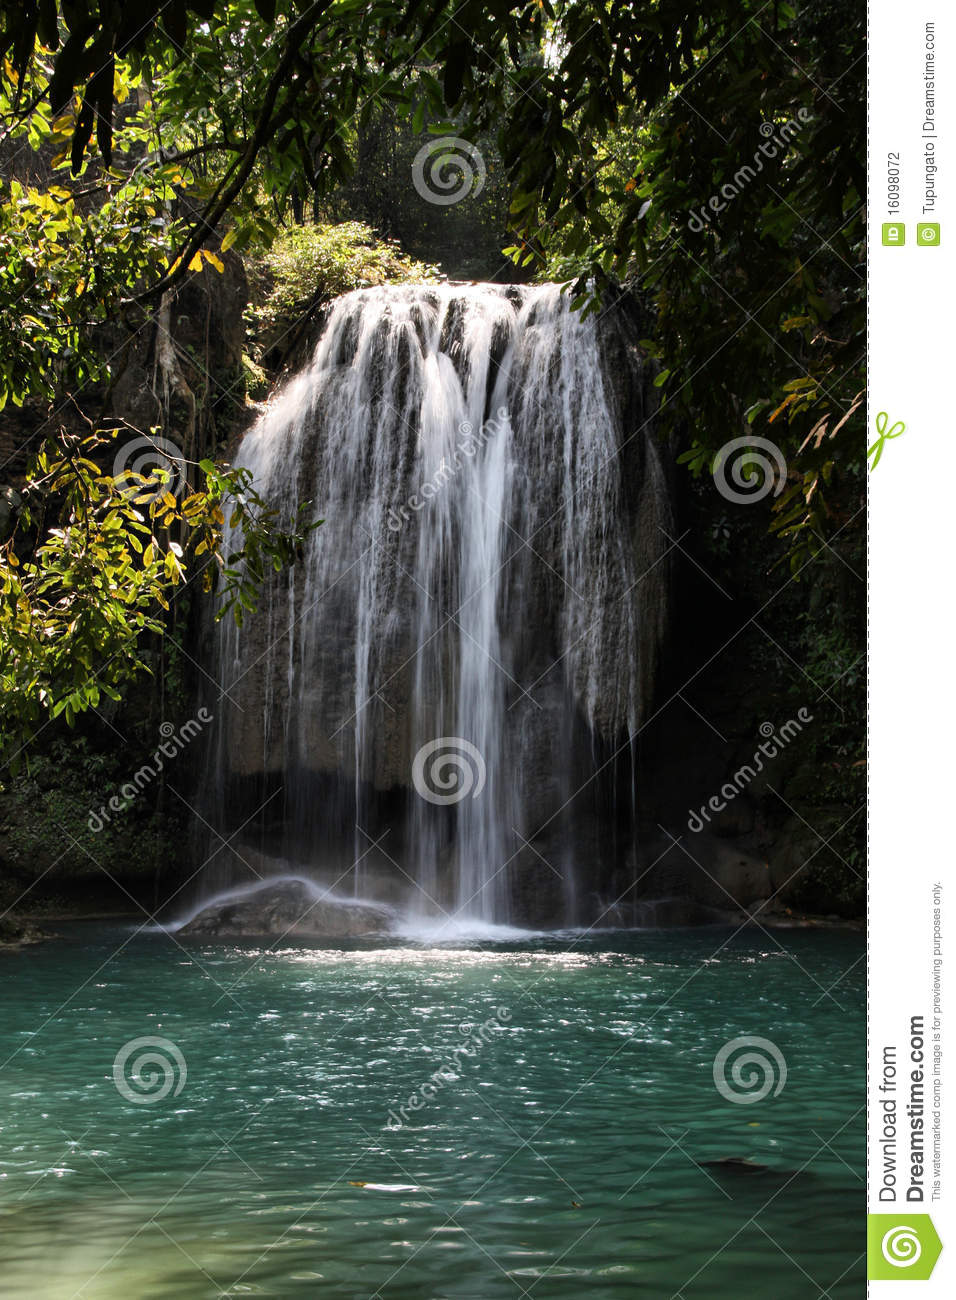 Beautiful waterfall in thailand s erawan waterfalls national park - Jungle In Thailand Stock Photography Image 16098072